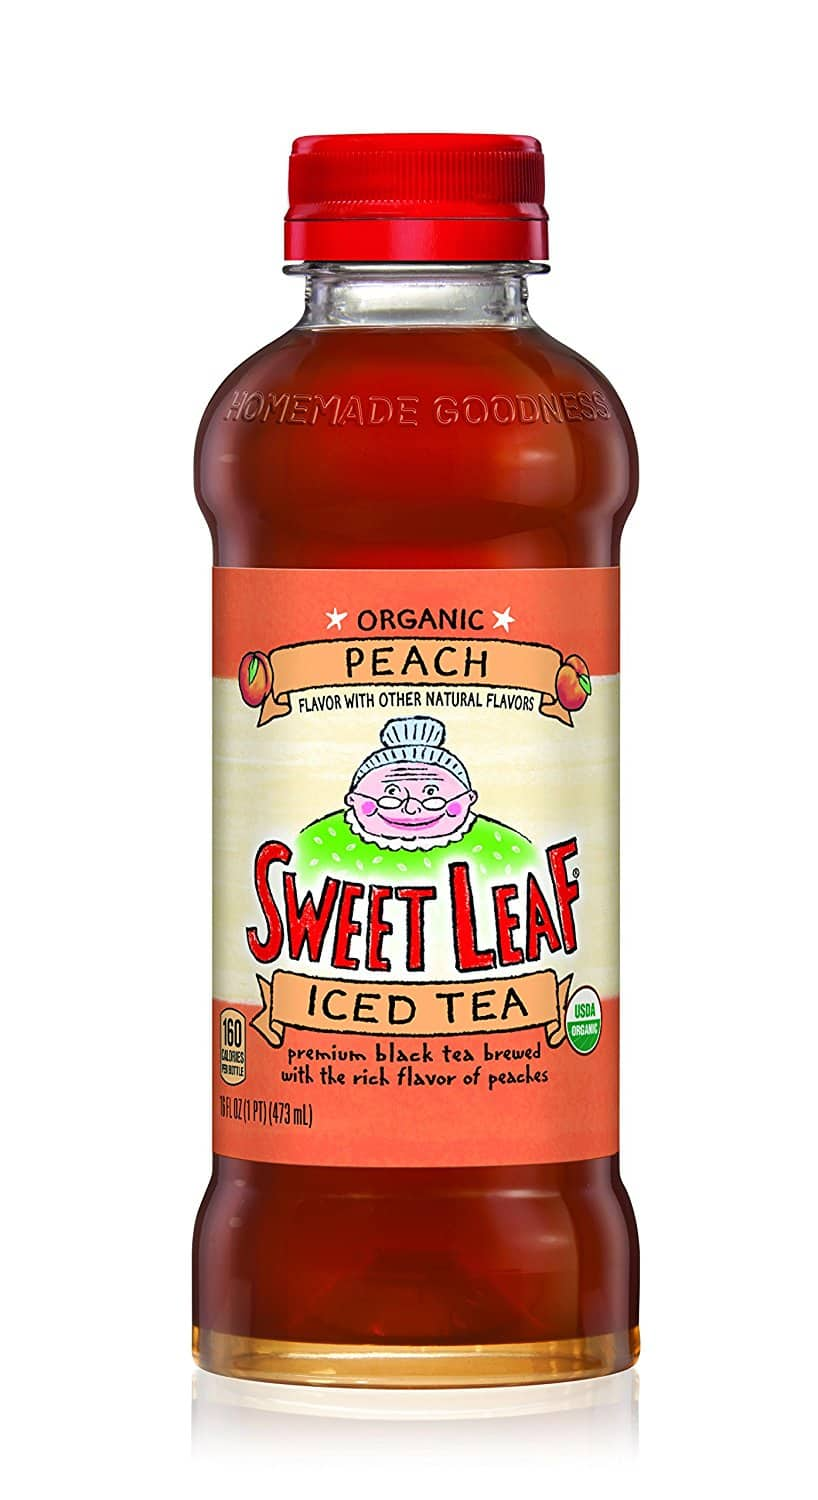 Pack Of 12 Sweet Leaf USDA-Certified Organic Iced Tea (Peach). $5.03 Amazon Prime Pantry (Also Buy 5 Get $6 back)